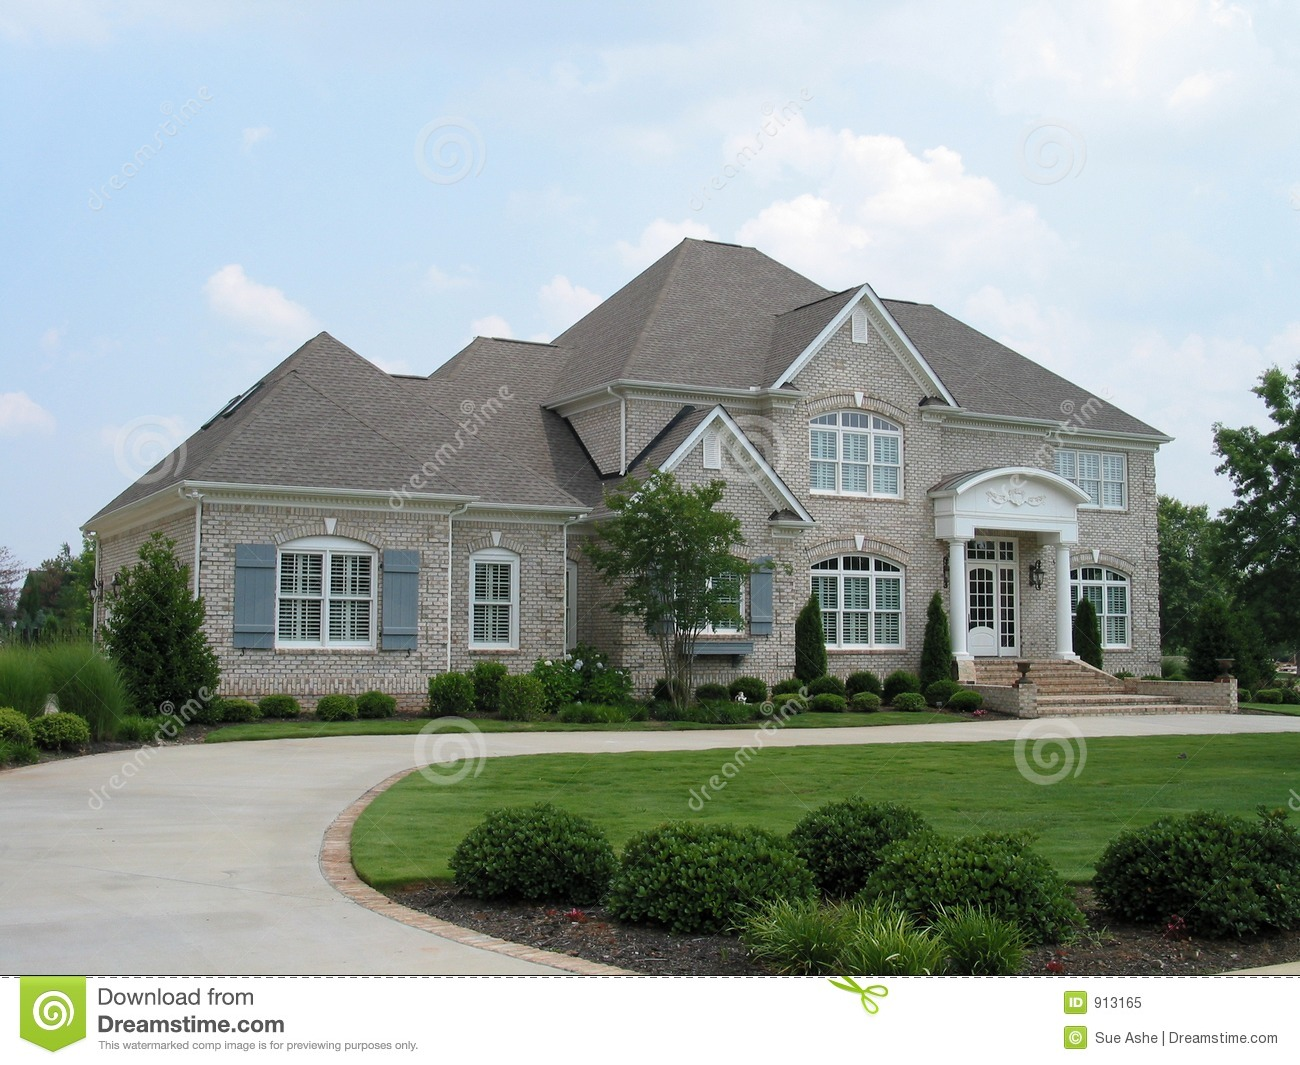 15 house stock photo images home real estate stock American dream homes plans